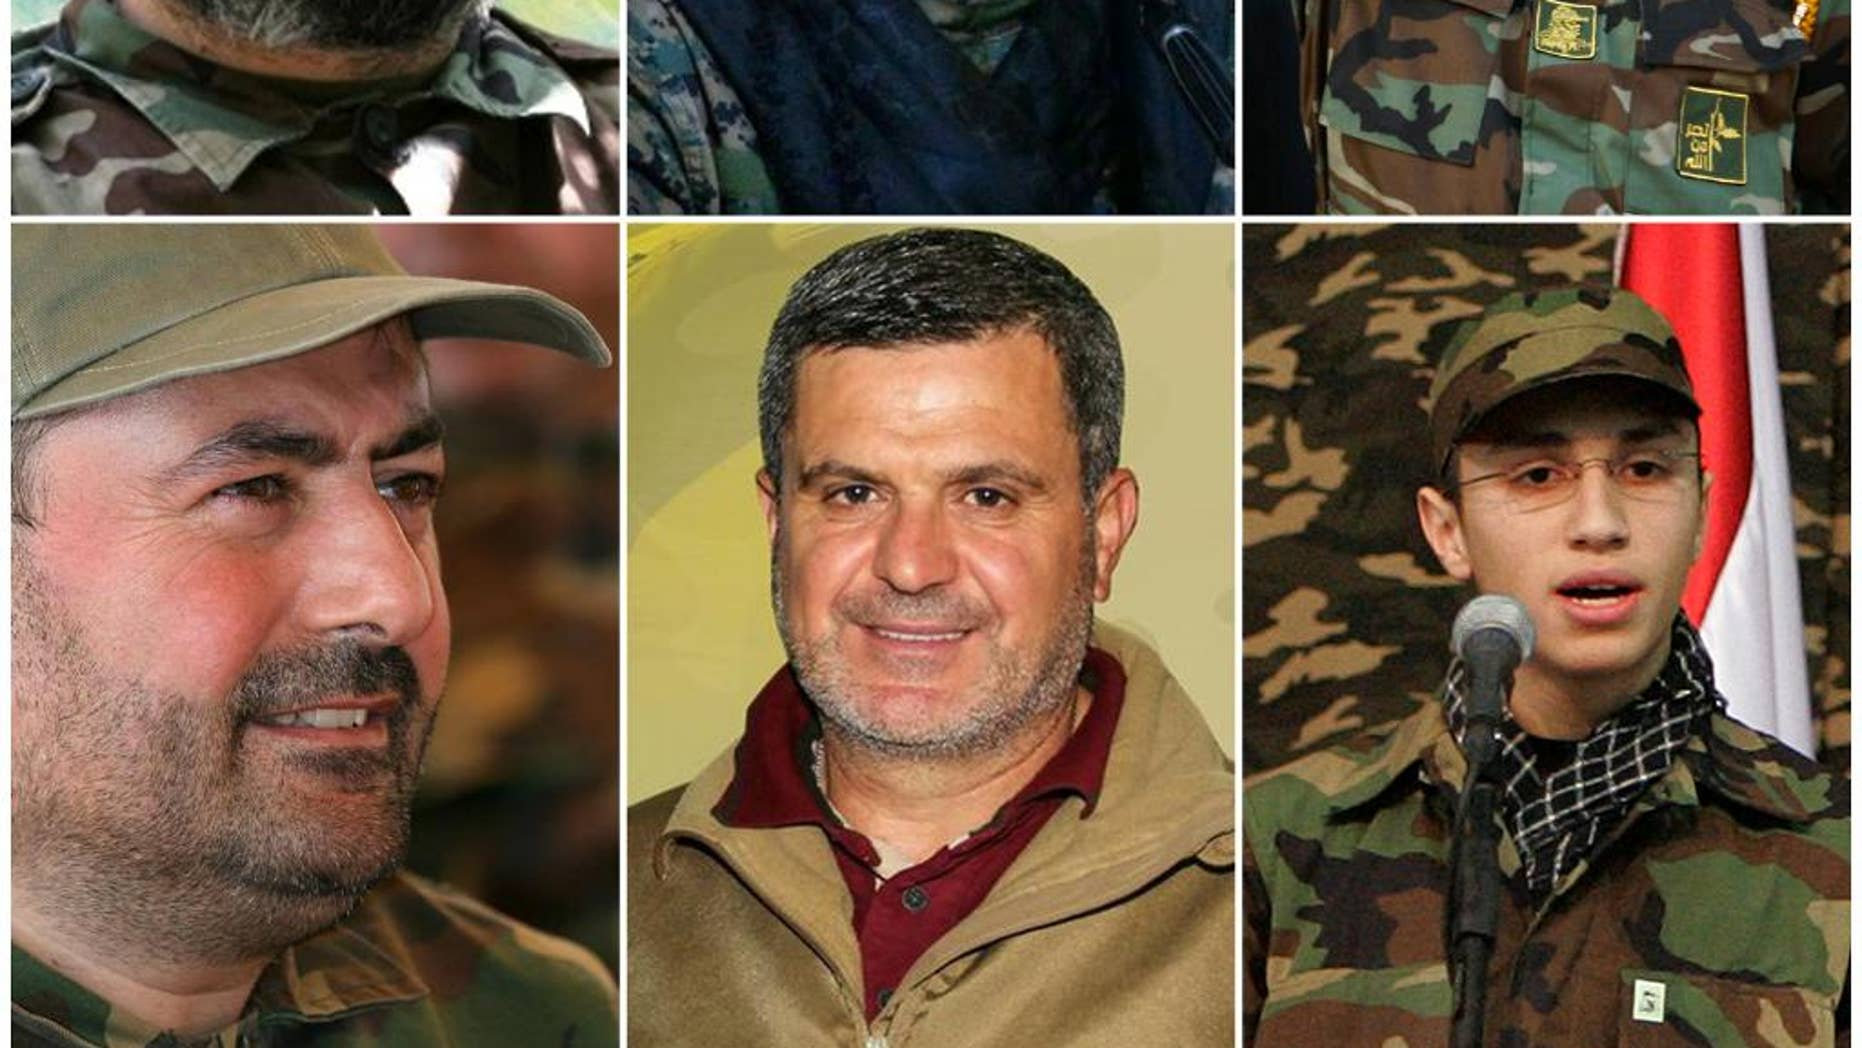 COMBO - this combo made up of six images shows Hezbollah top commanders who were killed in Syria, top row from left, Imad Mughniyeh, Mustafa Badreddine and Samir Kantar, at bottom row from left are Hassan Hussein al-Haj, Ali Fayyadh and Jihad Mughniyeh. Since Hezbollah joined Syria's civil war in 2012 to support President Bashar Assad, it has lost several prominent members in combat and has gained a broader range of enemies. (Hezbollah Media Department via AP)